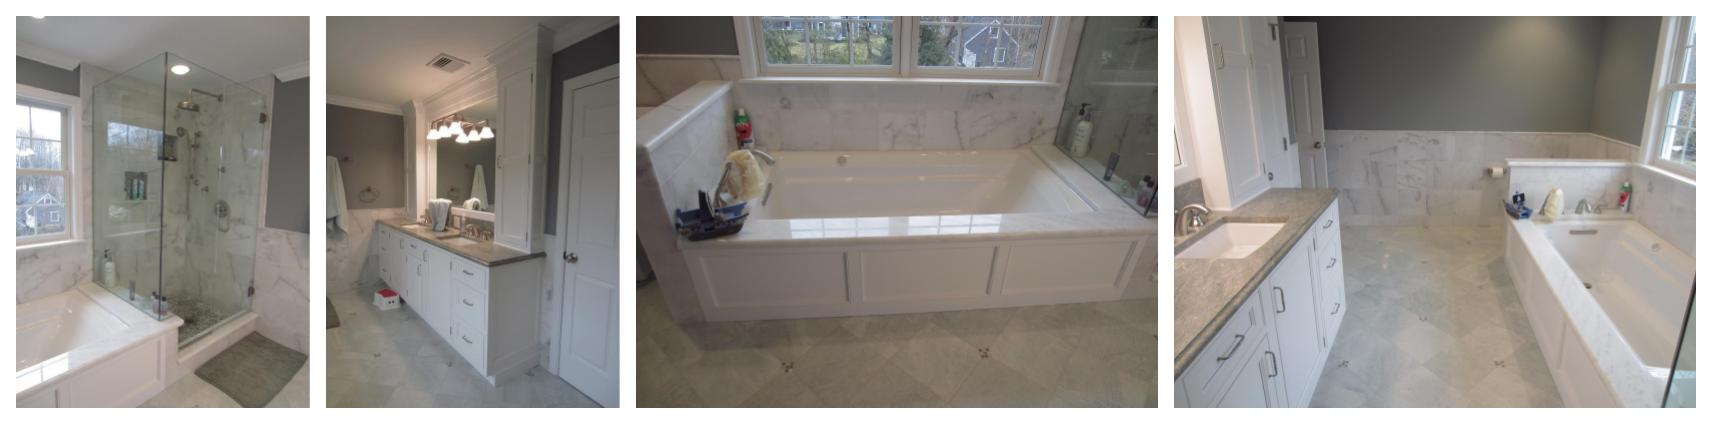 stamford-ct-bathroom-renovation